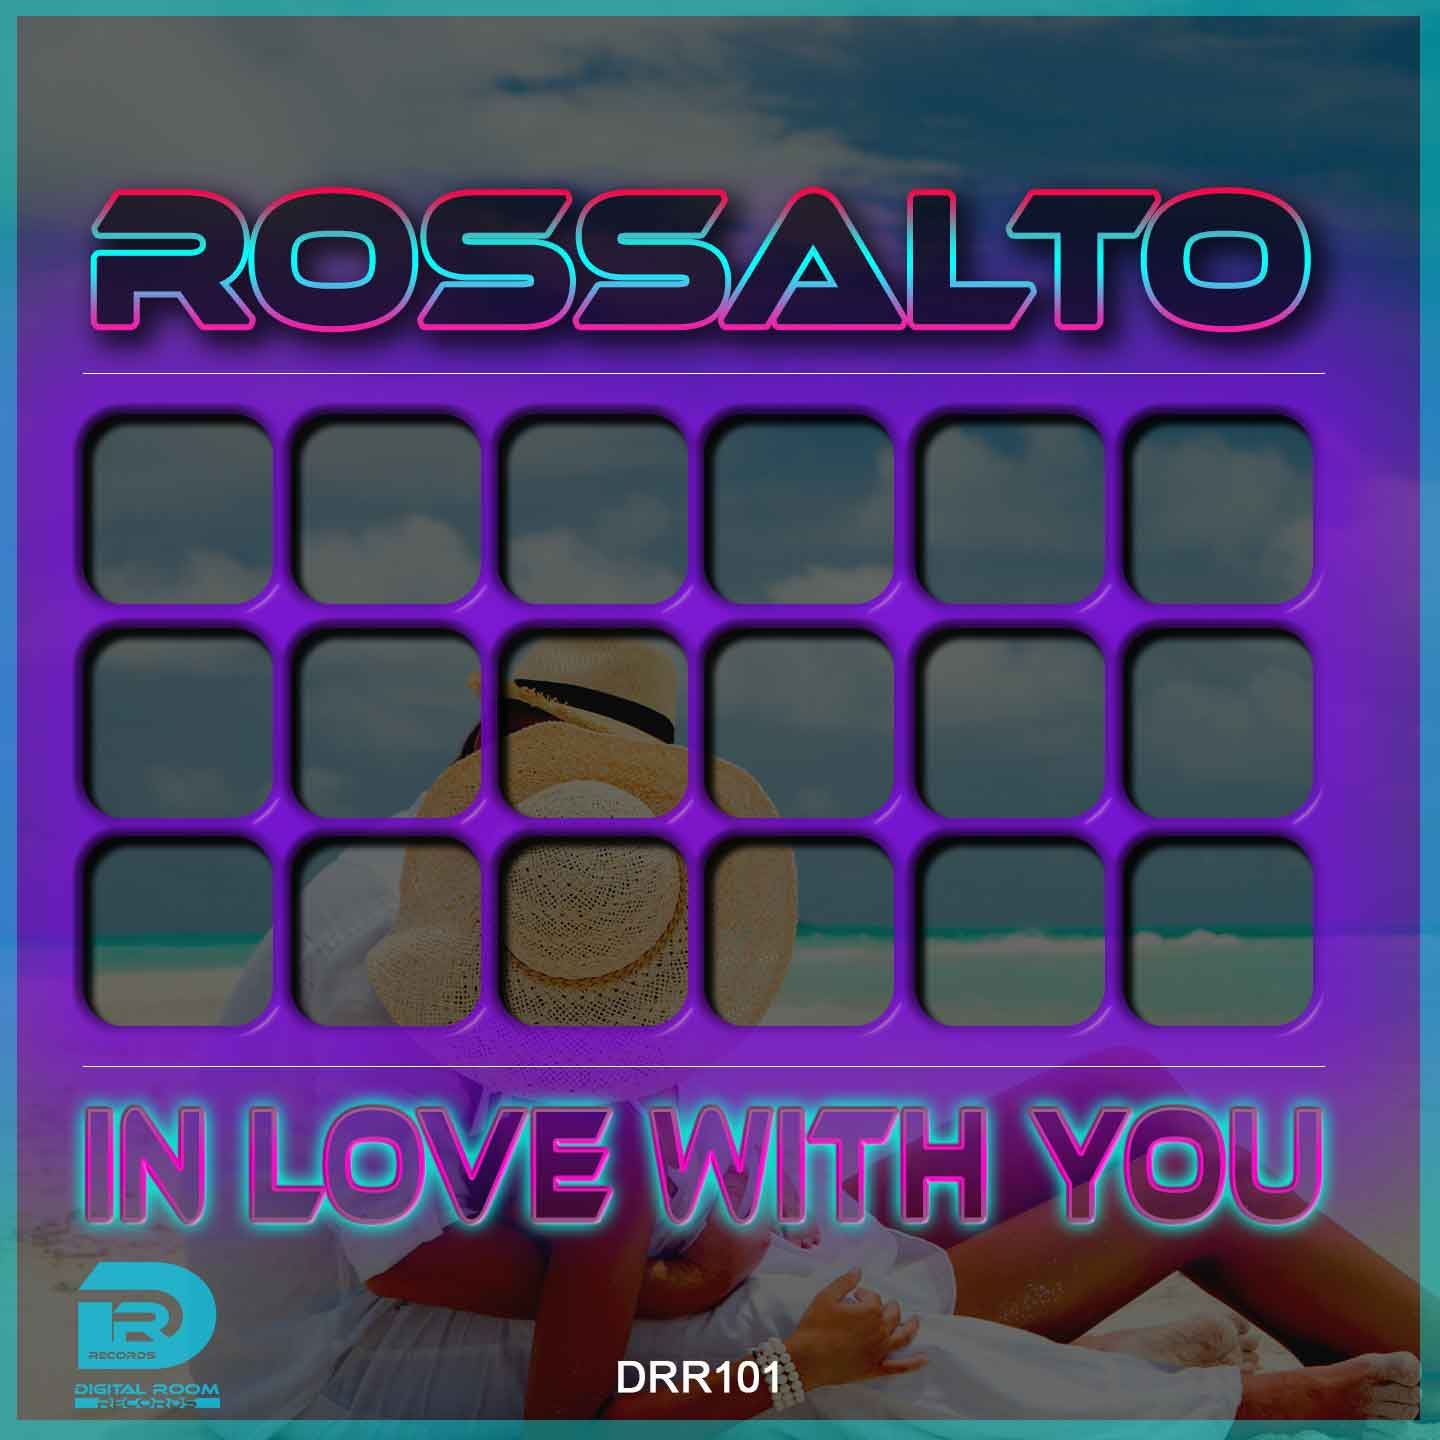 In Love with you (Original Mix)